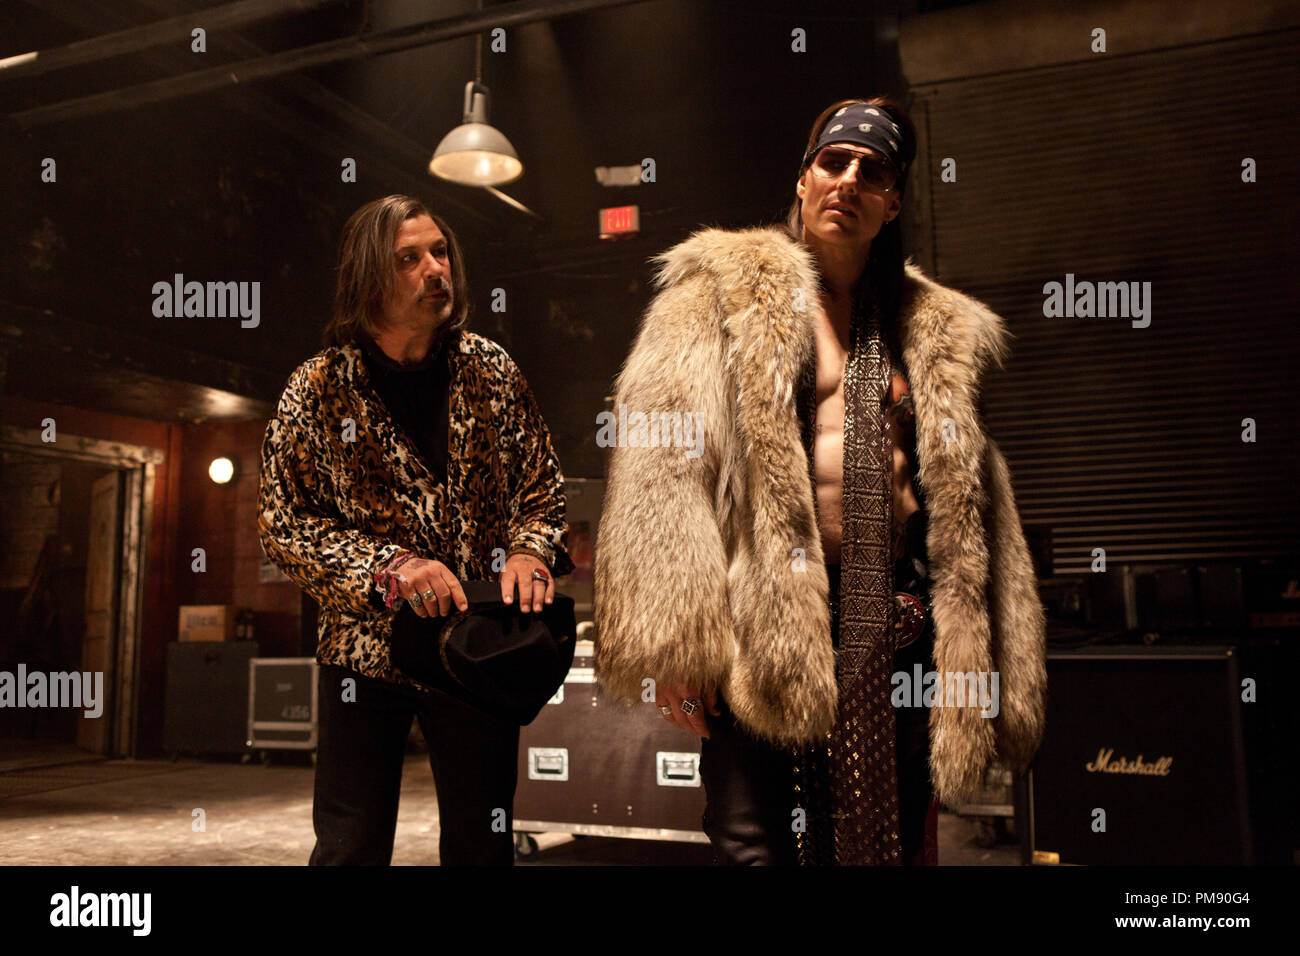 """(L-r) ALEC BALDWIN as Dennis Dupree and TOM CRUISE as Stacee Jaxx in New Line Cinema's rock musical """"ROCK OF AGES,"""" a Warner Bros. Pictures release. Stock Photo"""